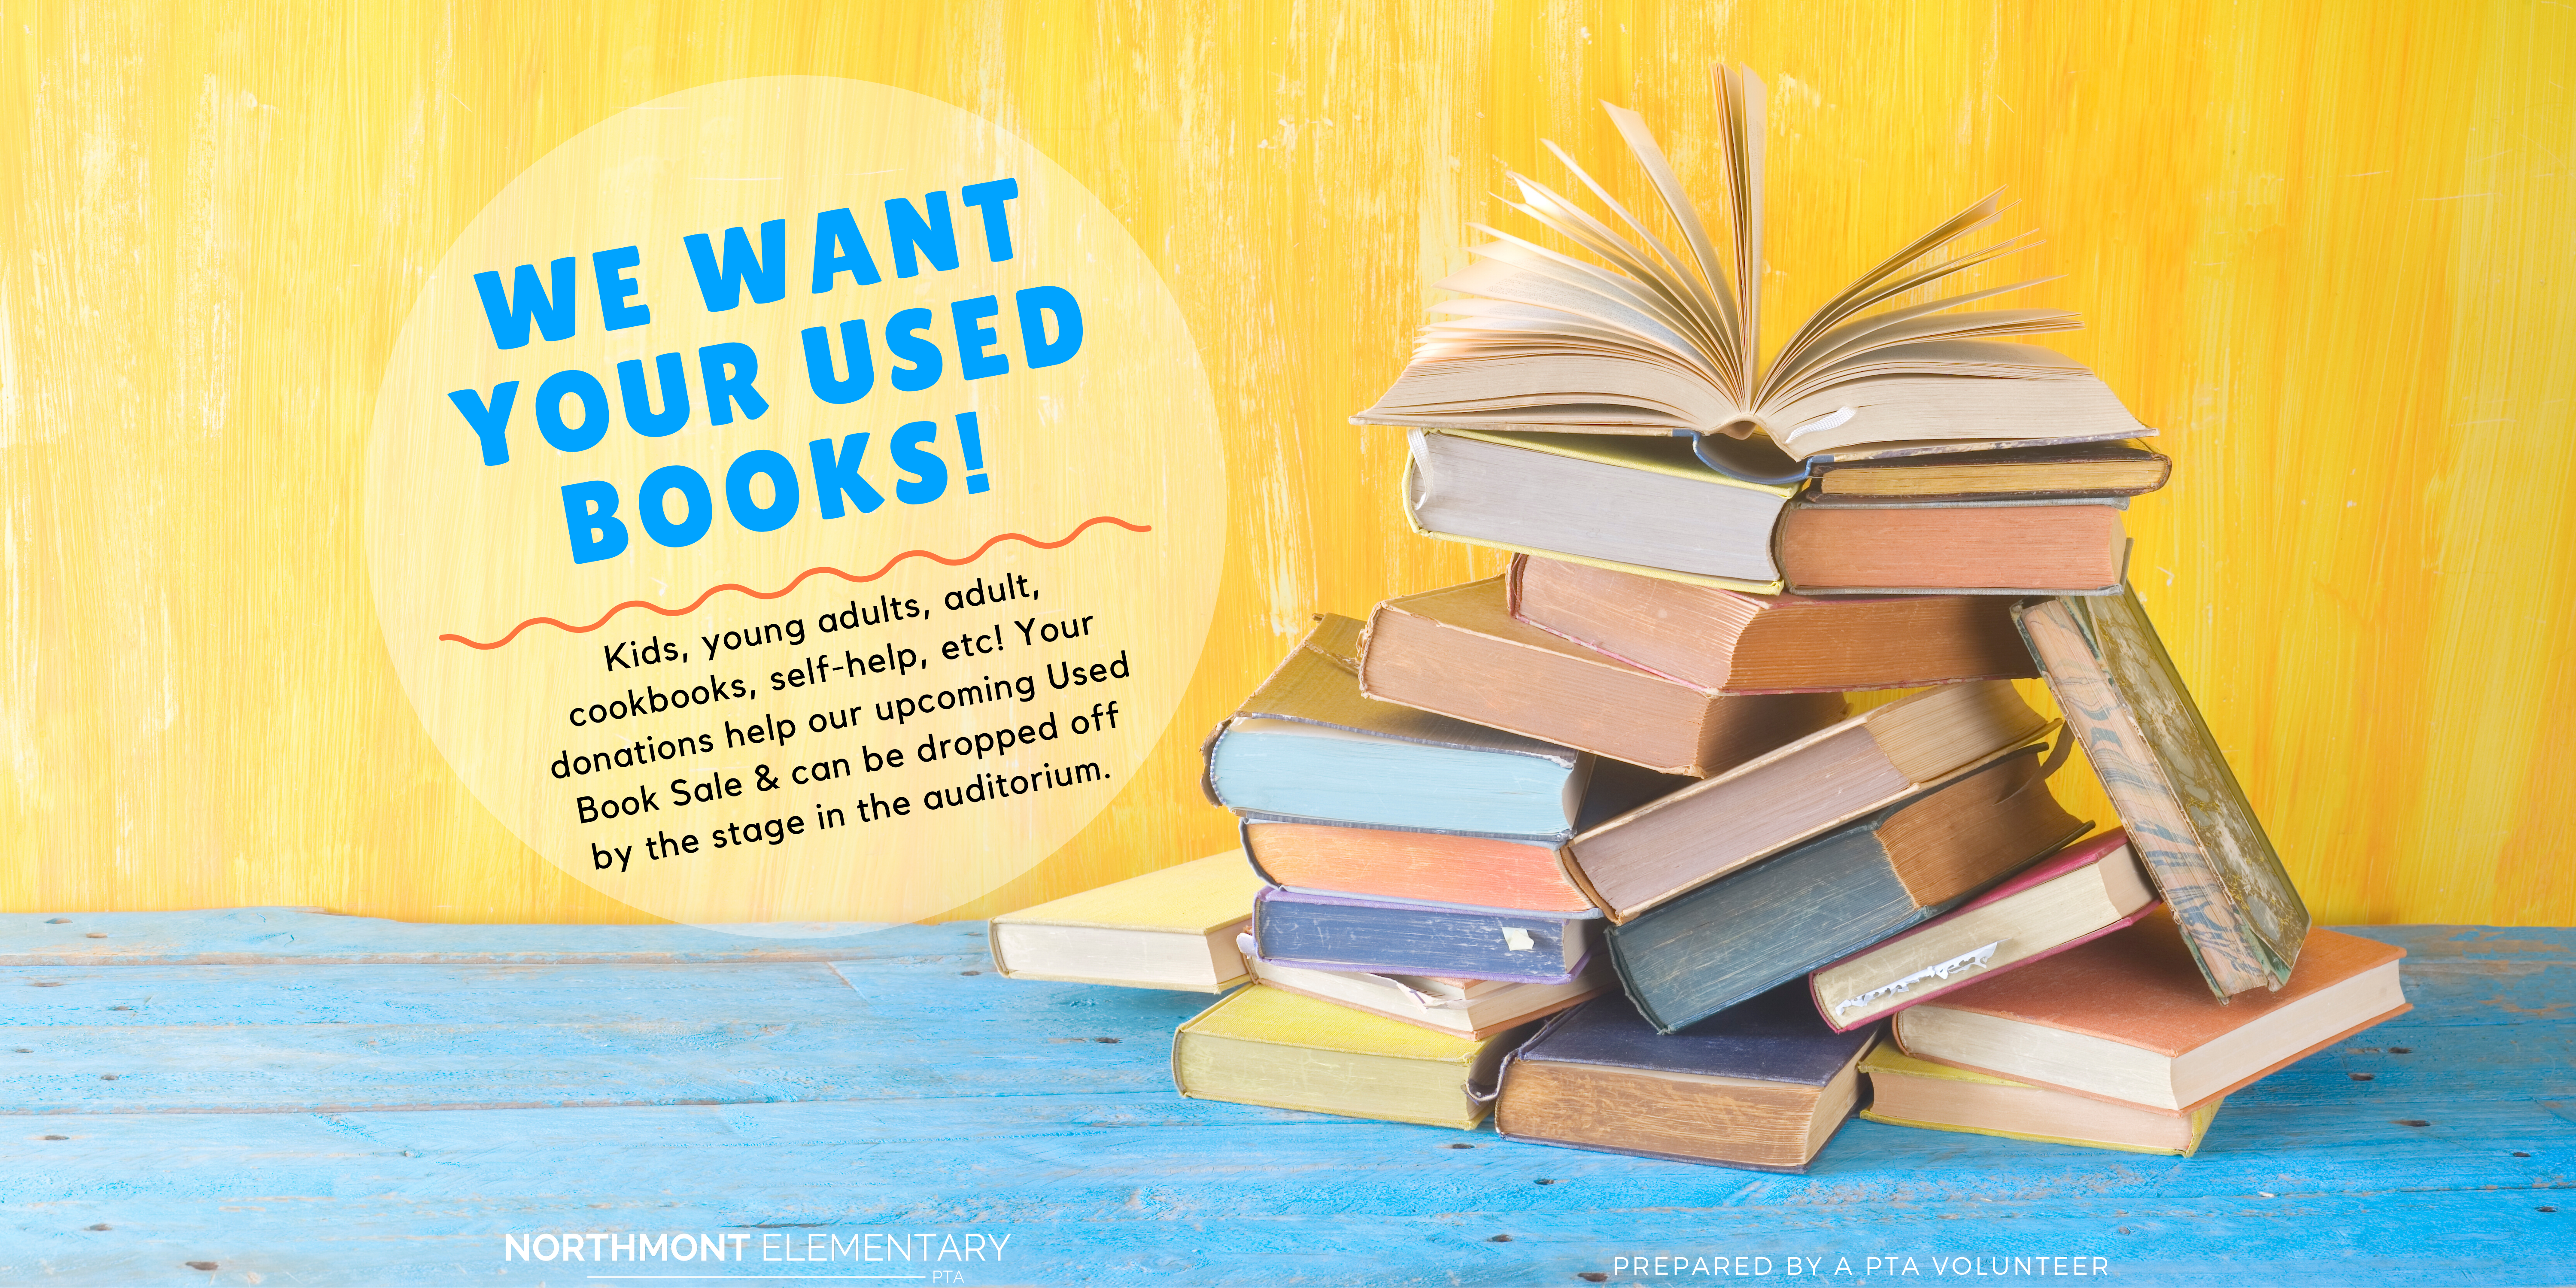 WE WANT YOUR USED BOOKS!